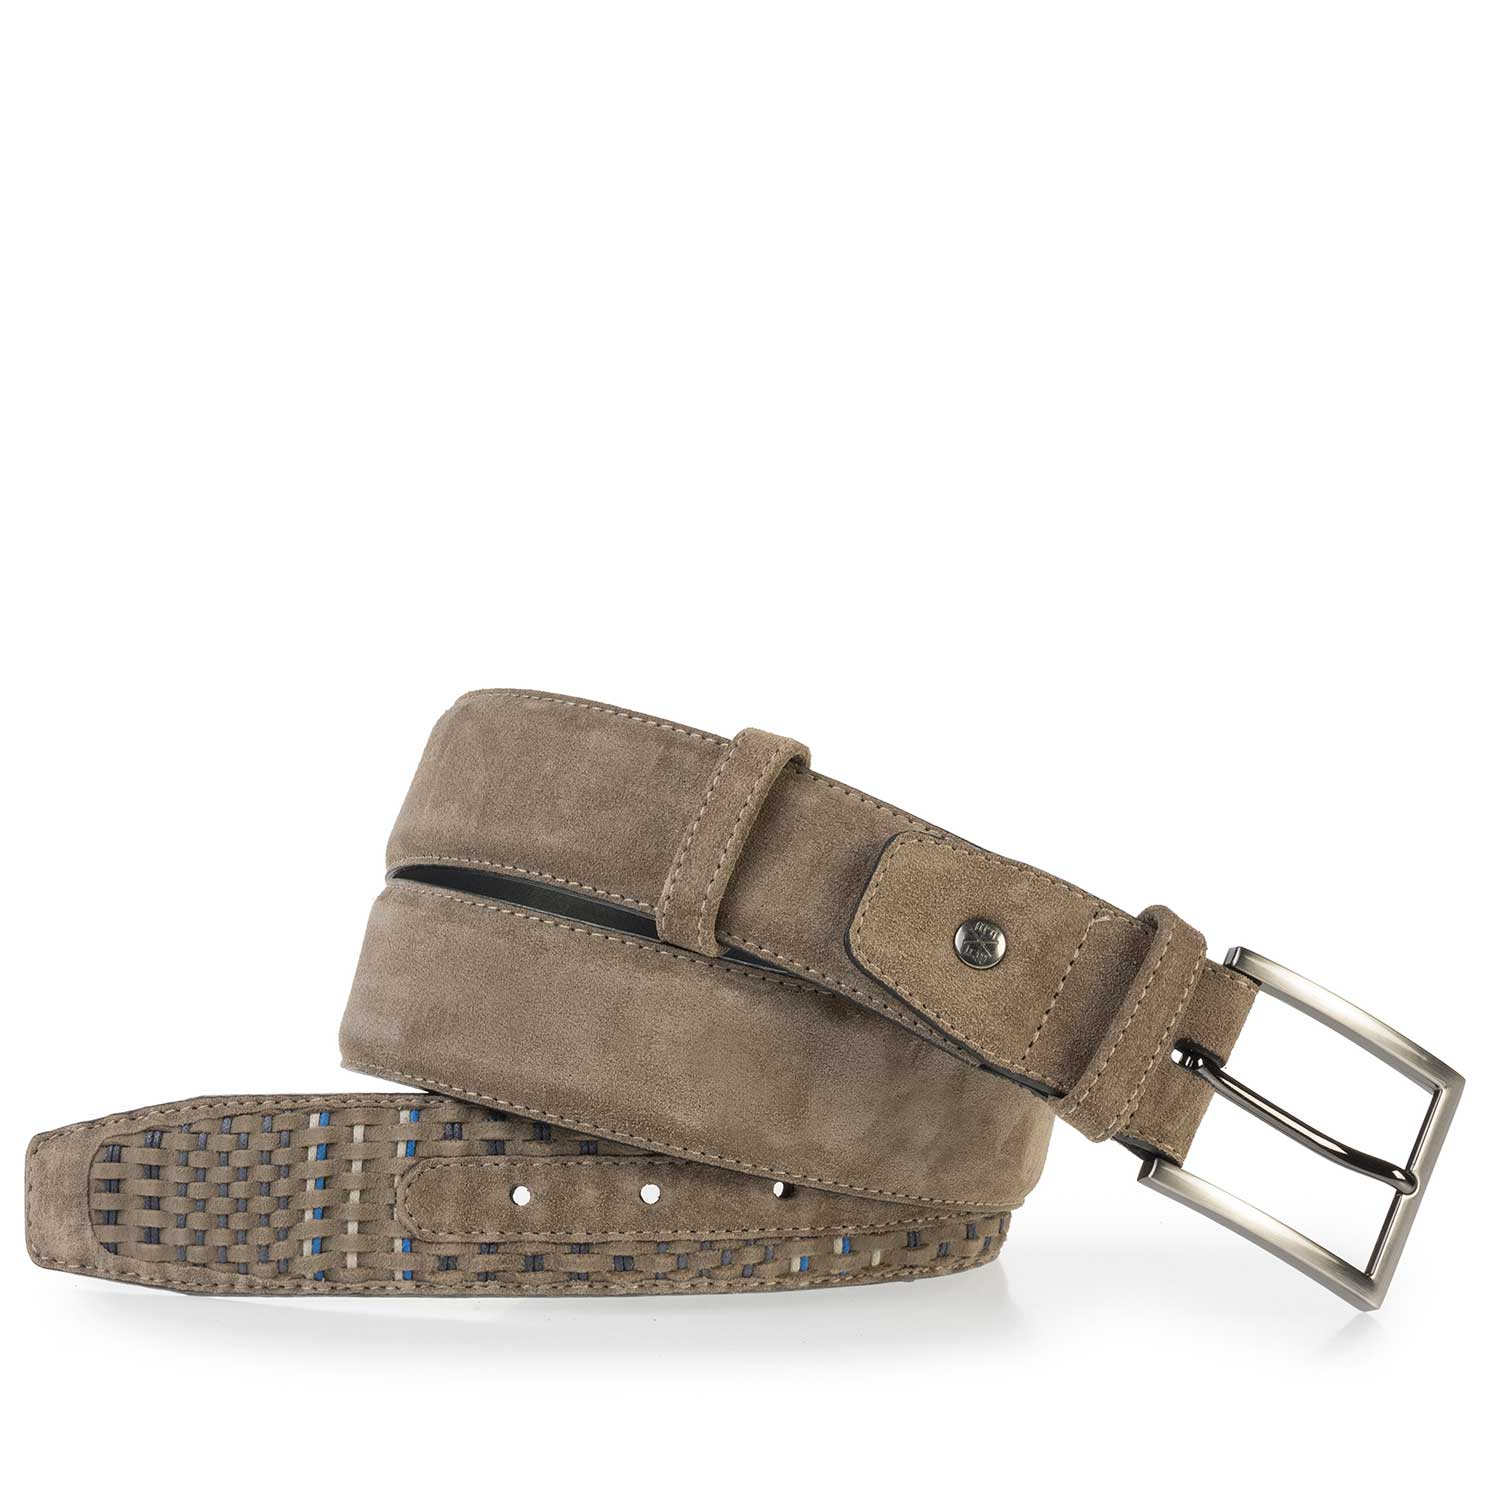 75159/11 - Taupe-coloured belt made of braided suede leather